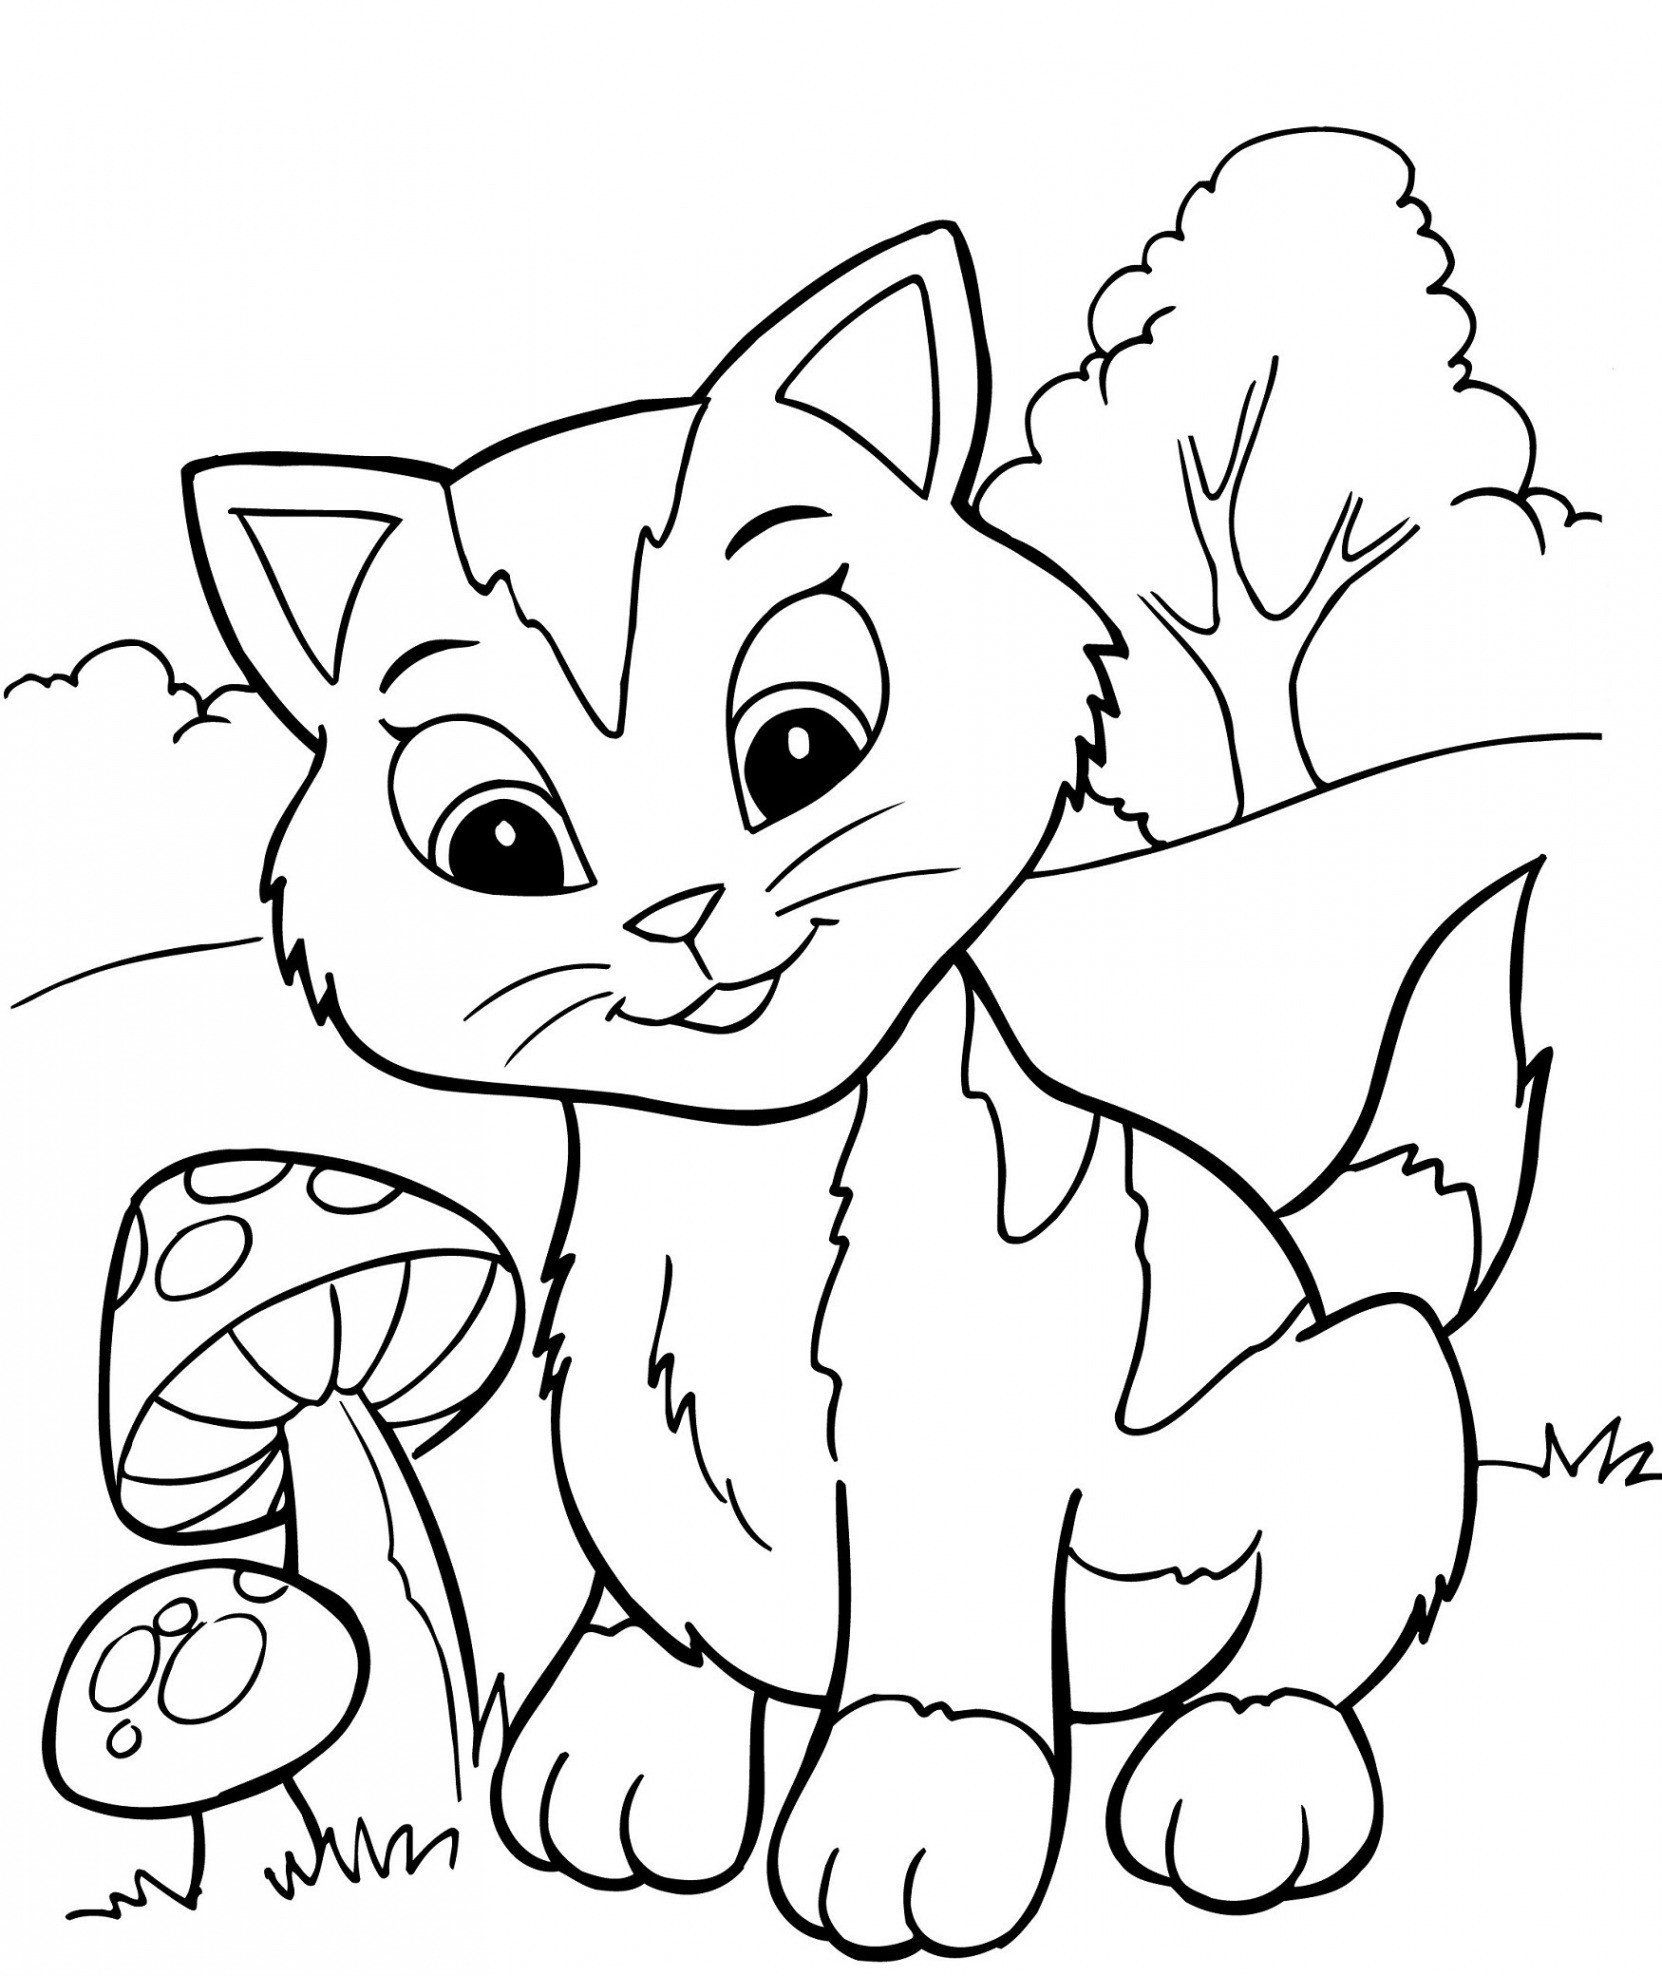 Cute Kitten Coloring Pages Best Of 26 Kittens Coloring Pages Download Coloring Sheets In 2020 Animal Coloring Pages Cat Coloring Page Kitten Coloring Book